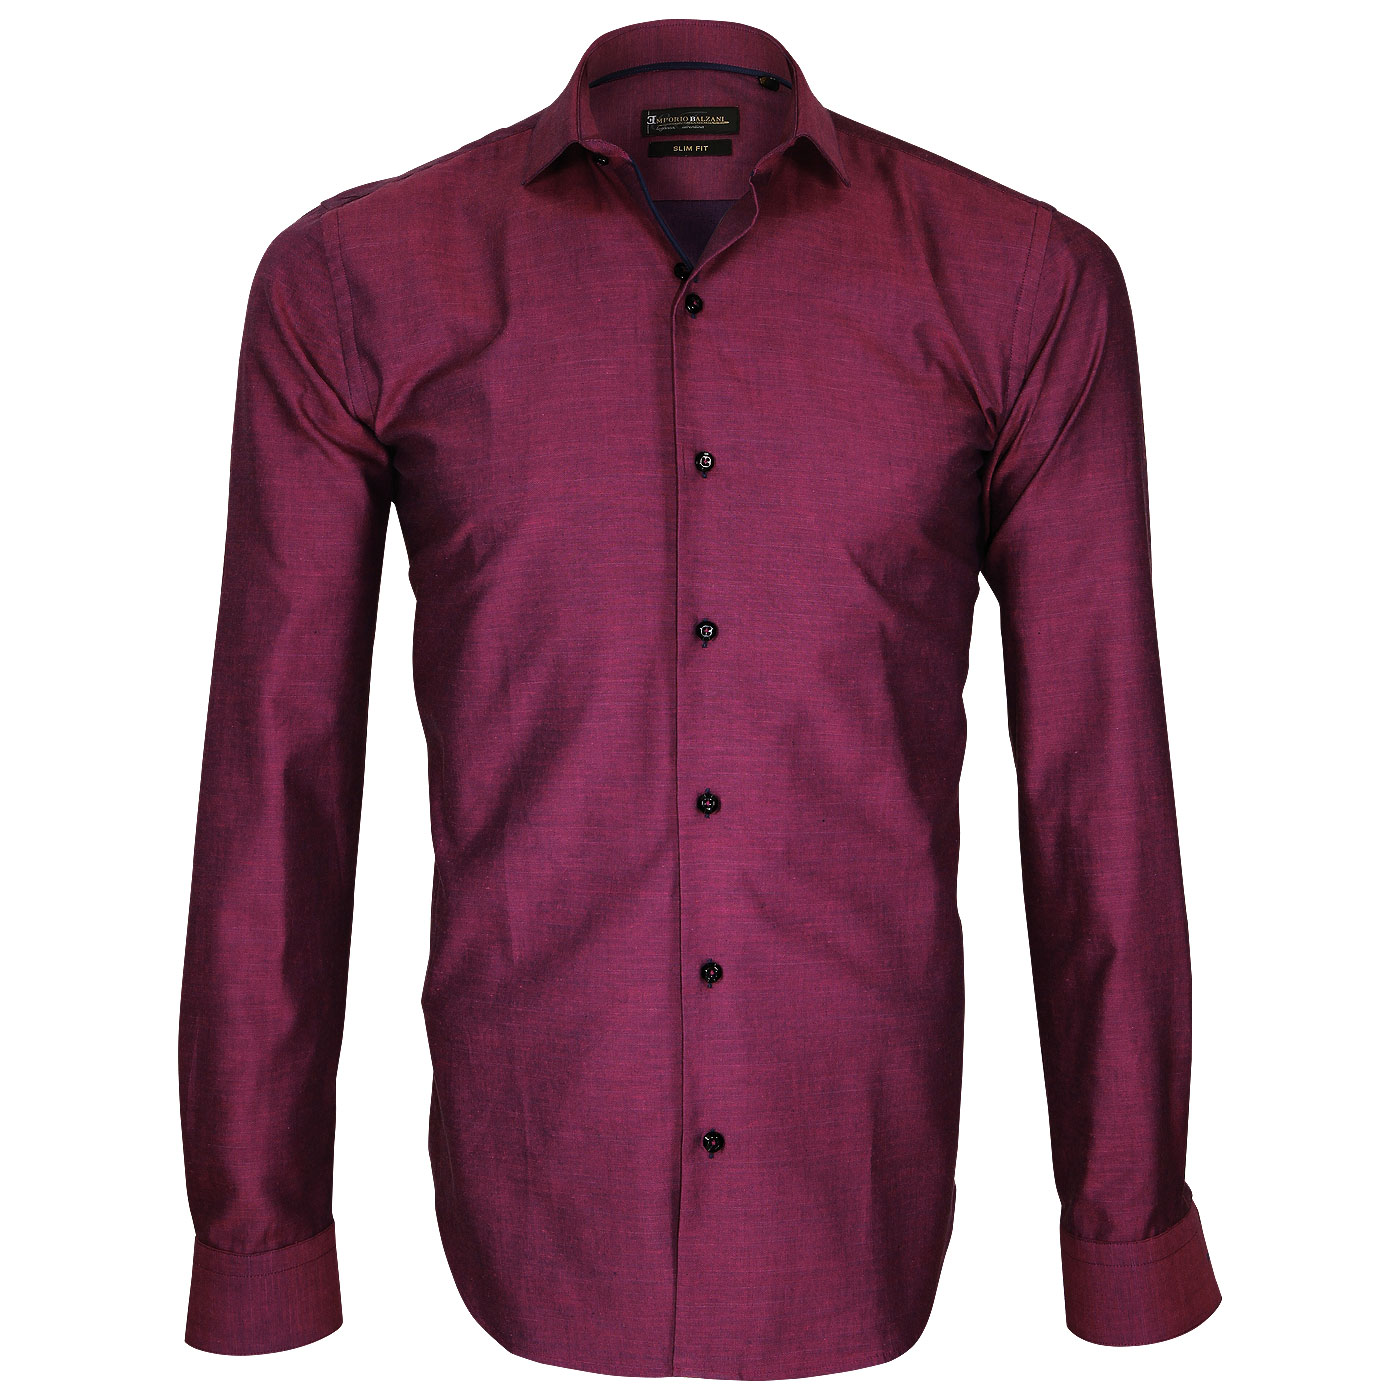 Men's Shirt: Webmenshirts Designer French manufacturer of Shirts